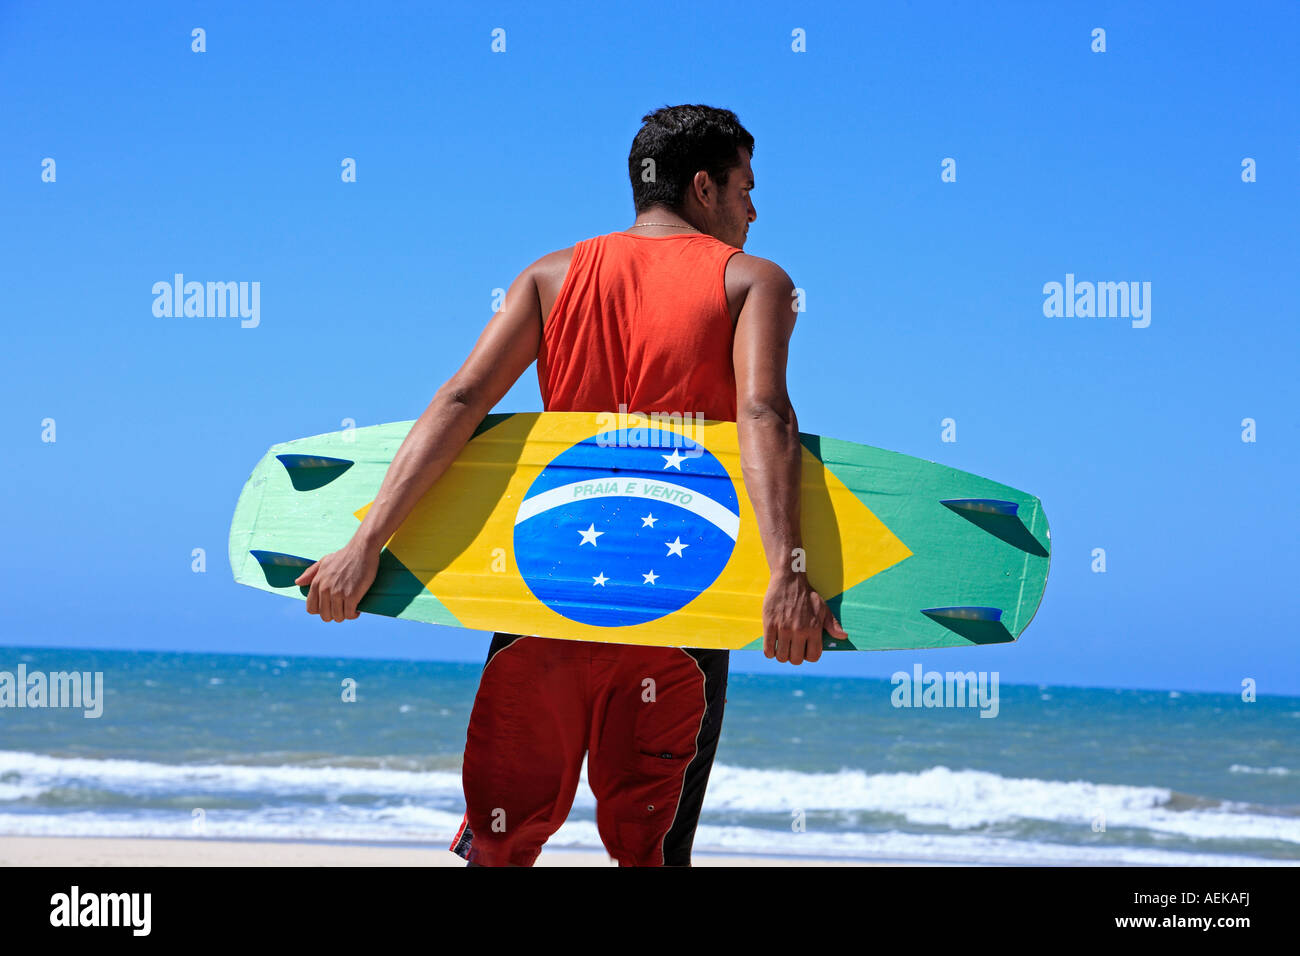 Kite surfer with the brazilian flag painted on the board with 'praia e vento' (beach and wind) instead of - Stock Image